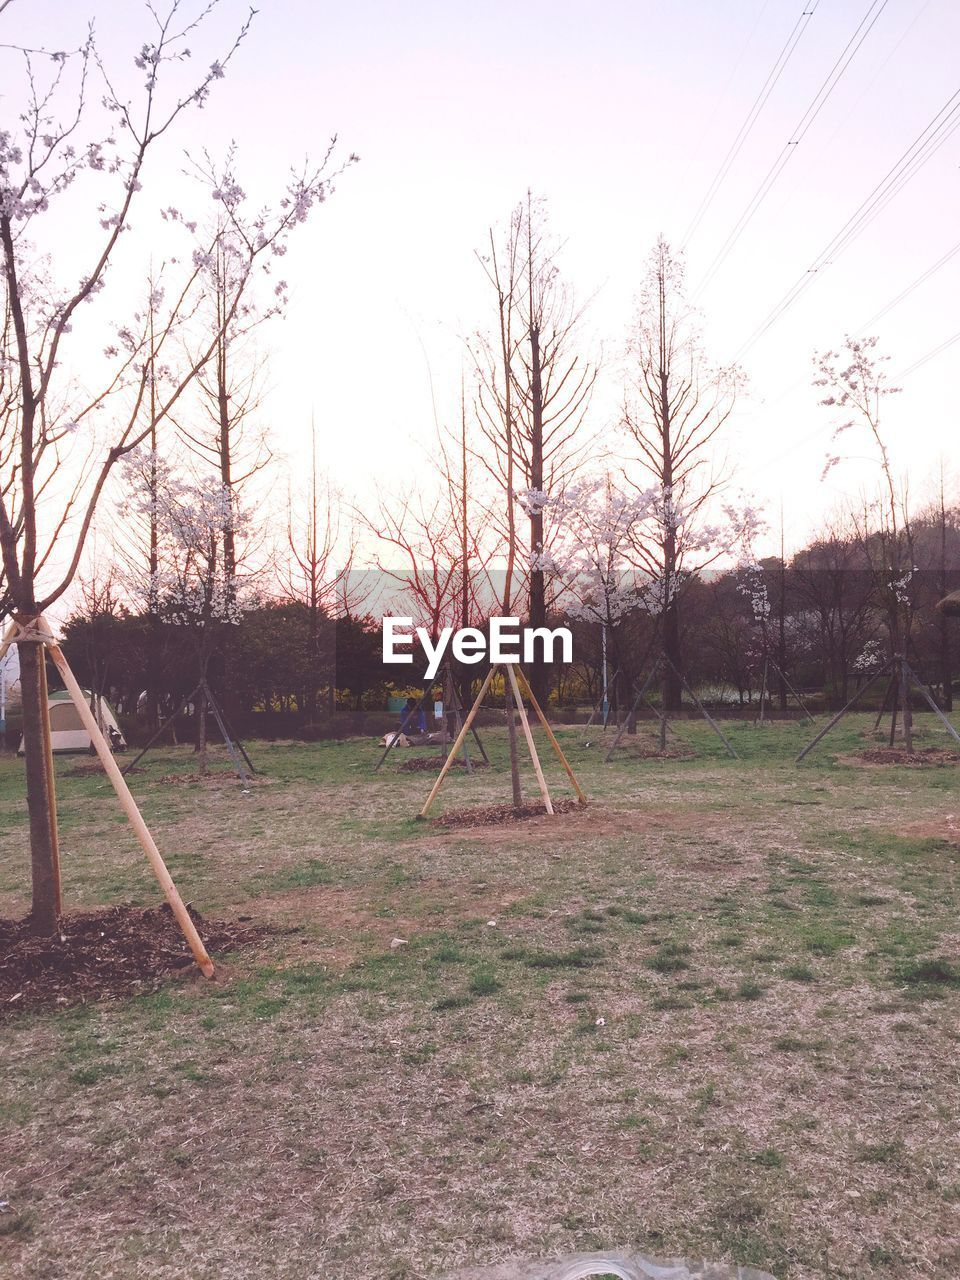 playground, outdoor play equipment, tree, swing, no people, park - man made space, childhood, field, landscape, tranquility, jungle gym, grass, sky, outdoors, nature, beauty in nature, scenics, day, bare tree, goal post